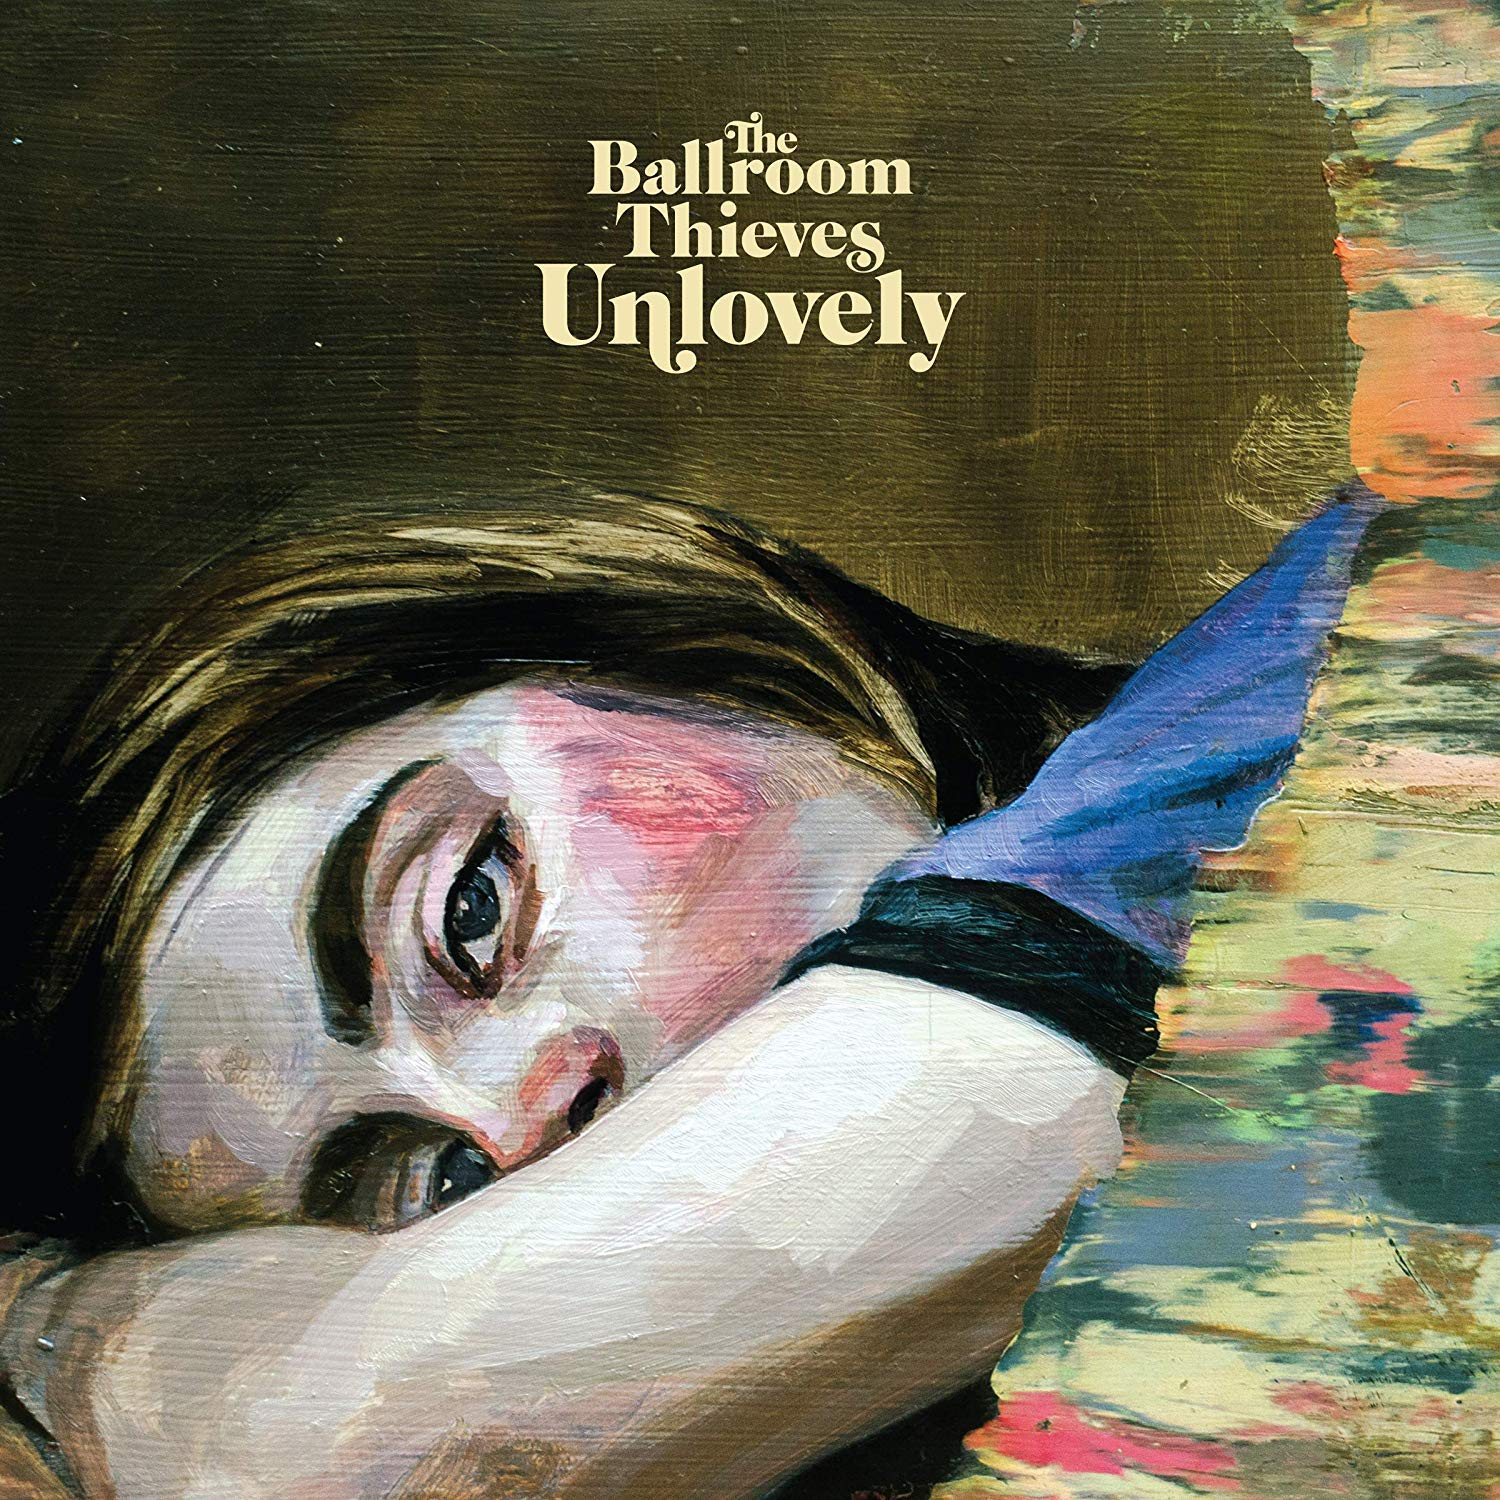 THE BALLROOM THIEVES - Unlovely